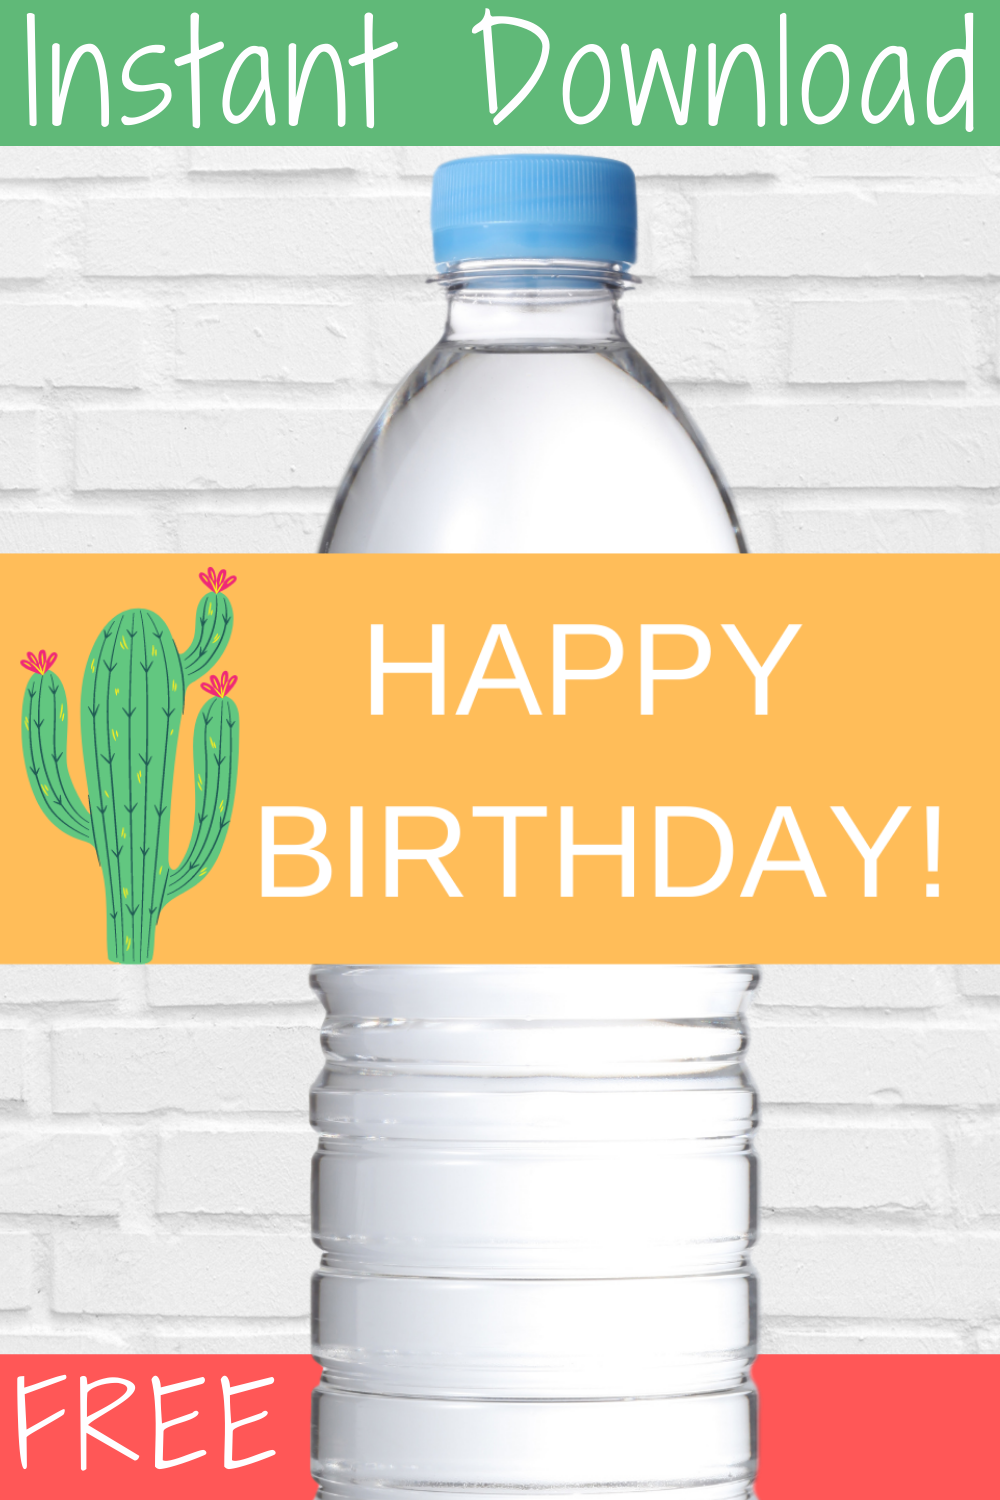 free download: fiesta themed birthday party décor